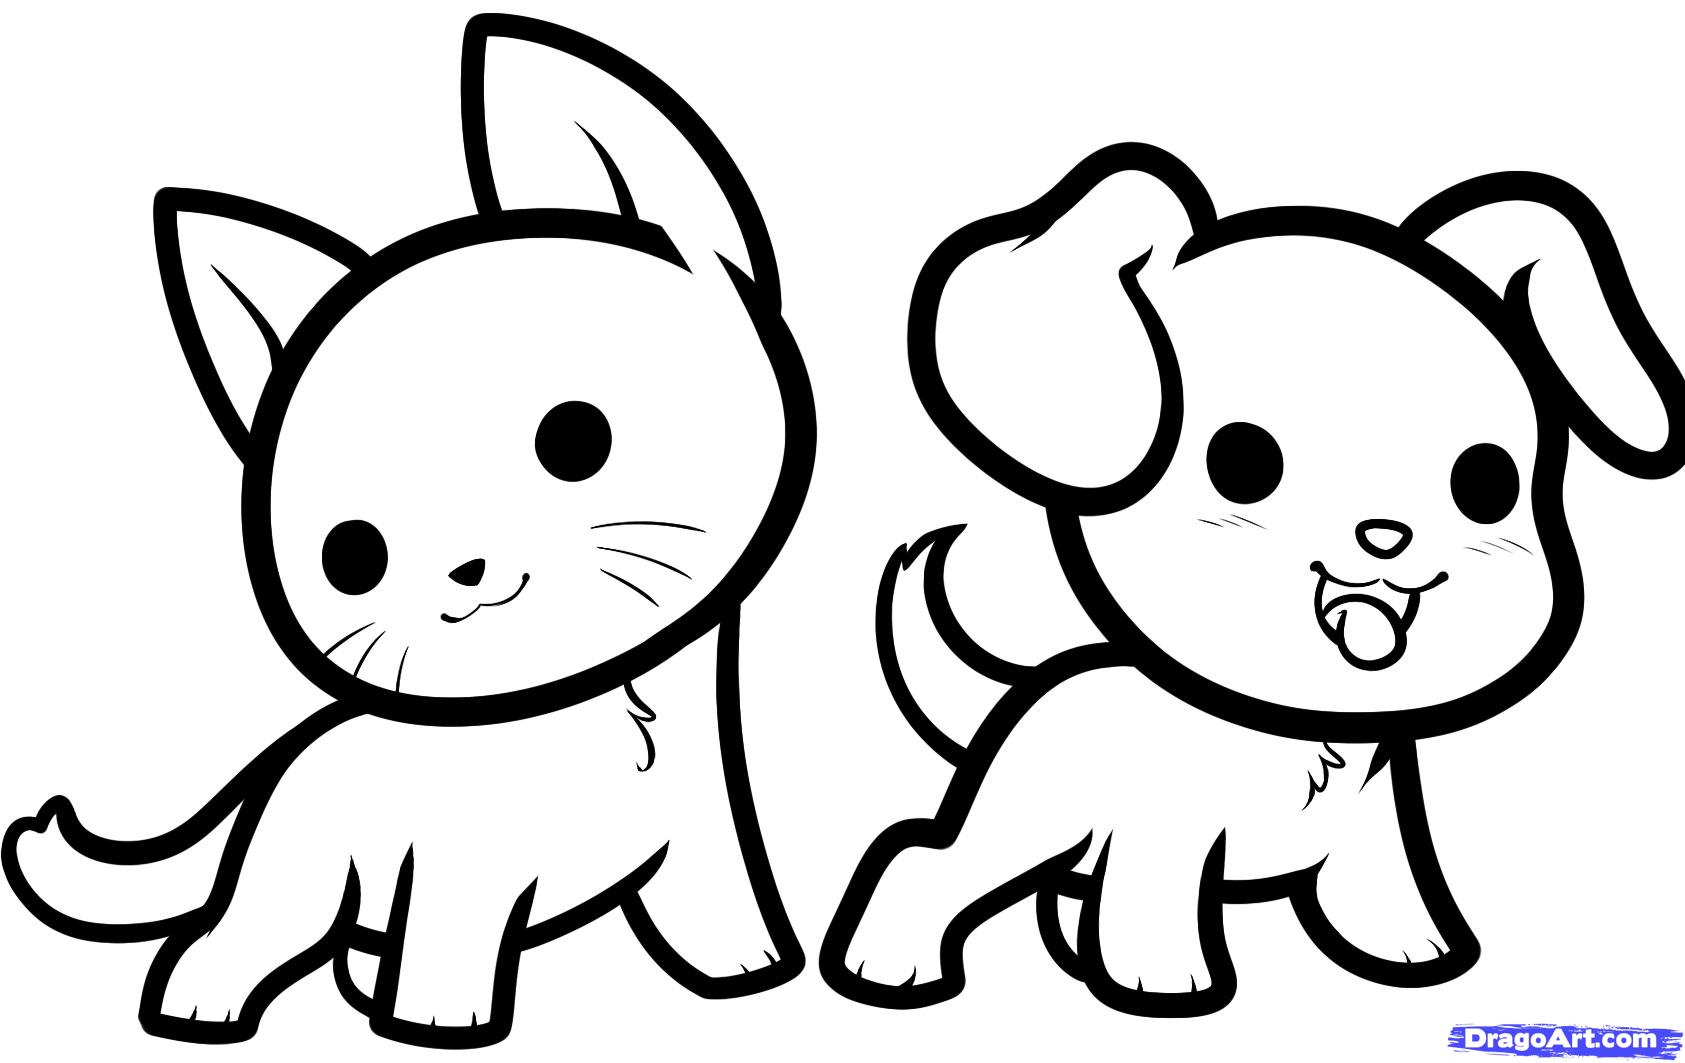 Cute drawings of animal. Animals clipart easy